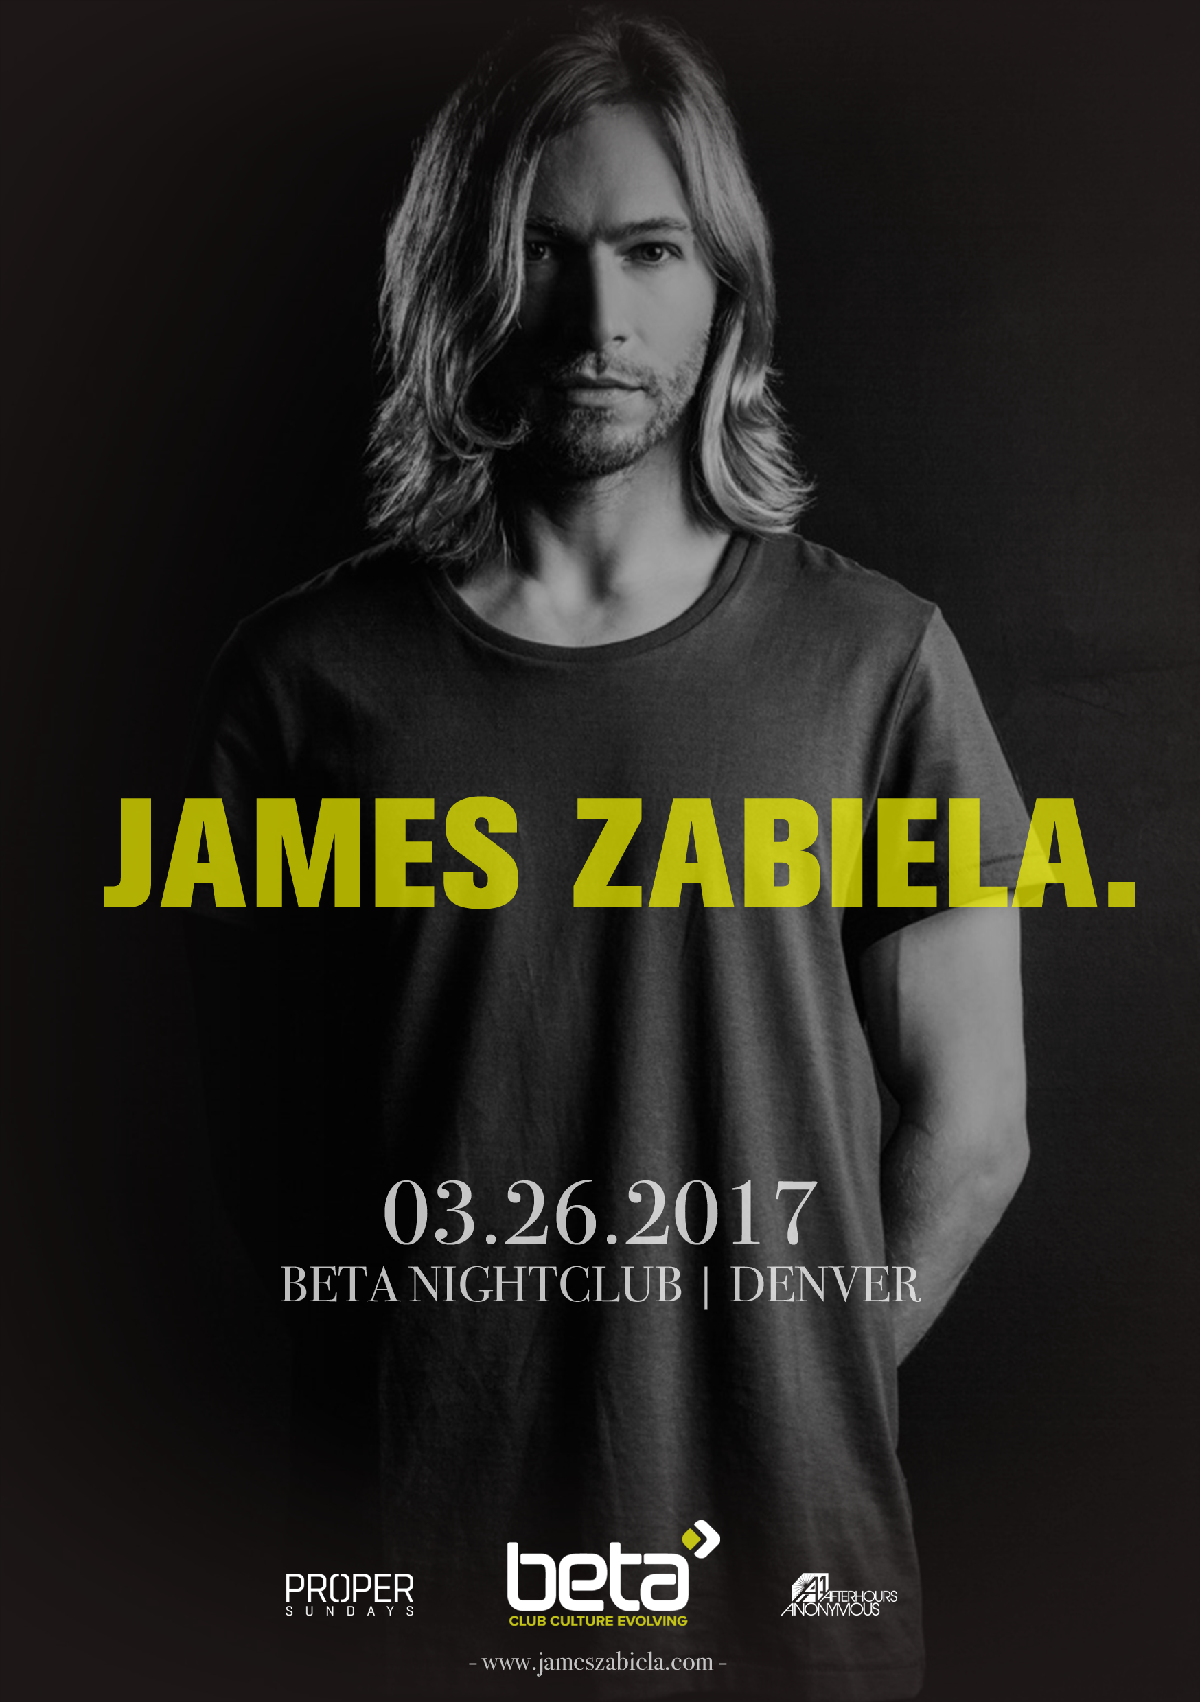 James zabiela beta nightclub share with your friends malvernweather Image collections